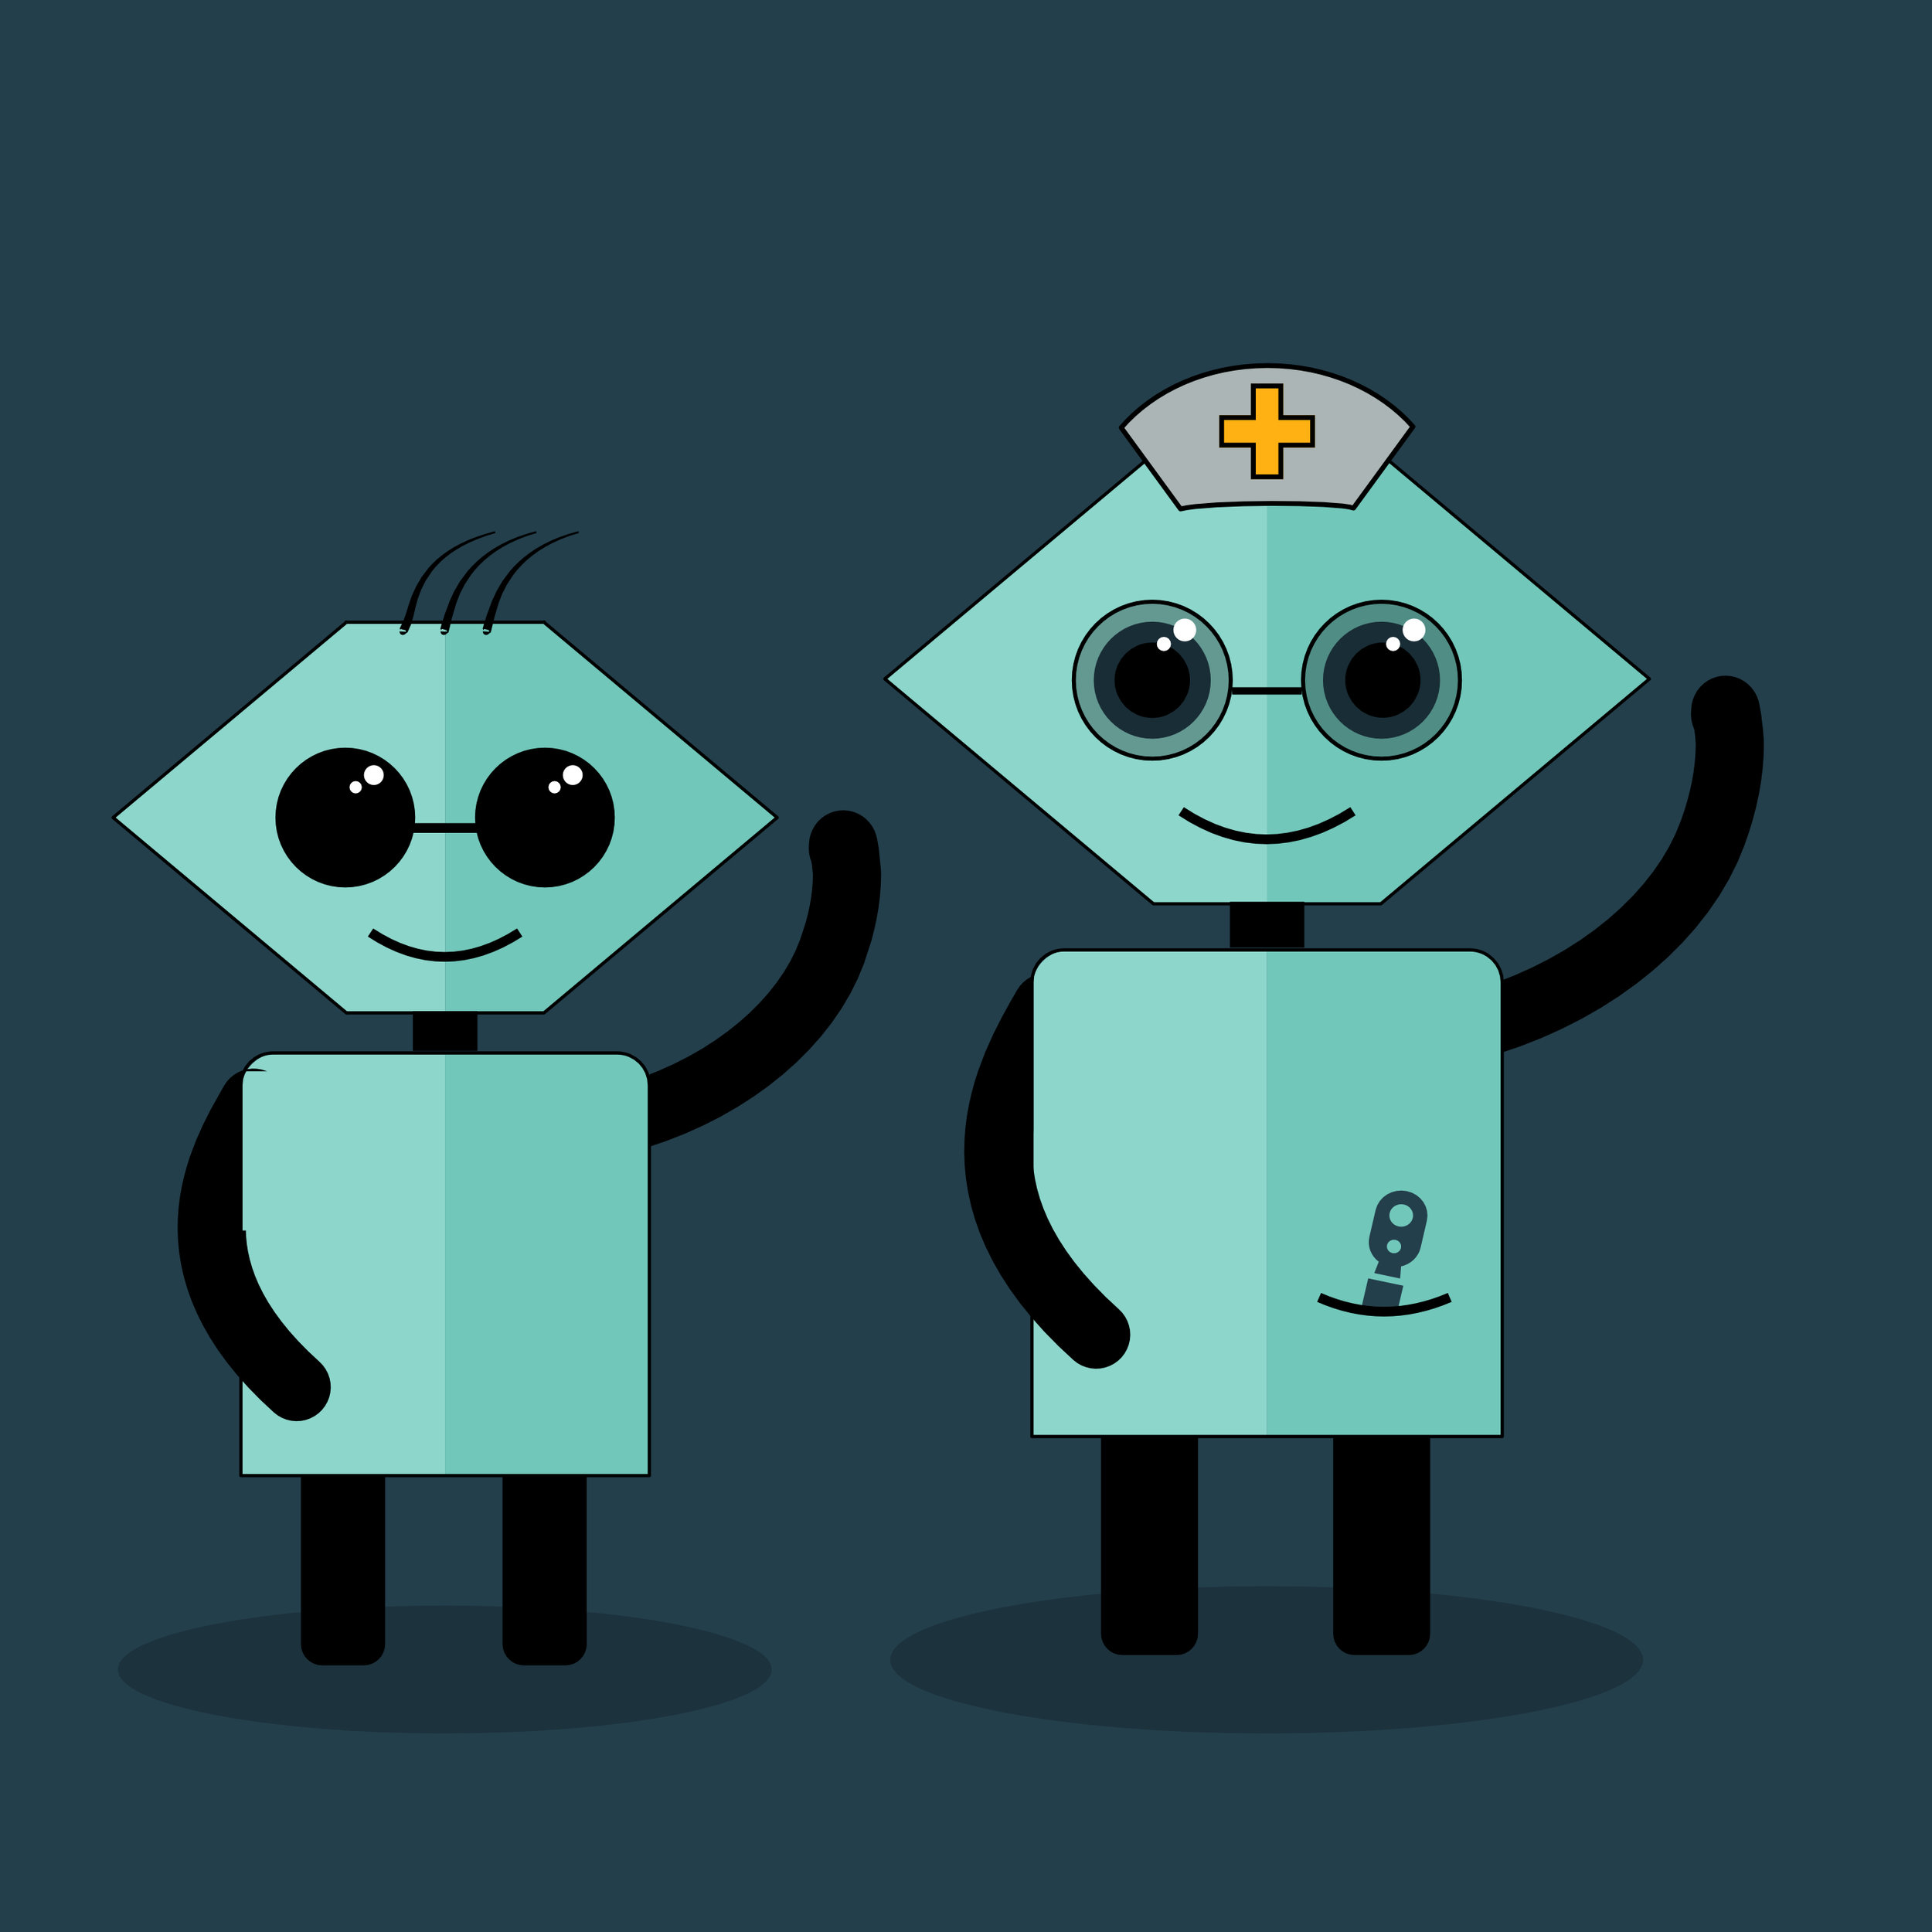 Character design done for an eye care chatbot,Adobe Illustrator